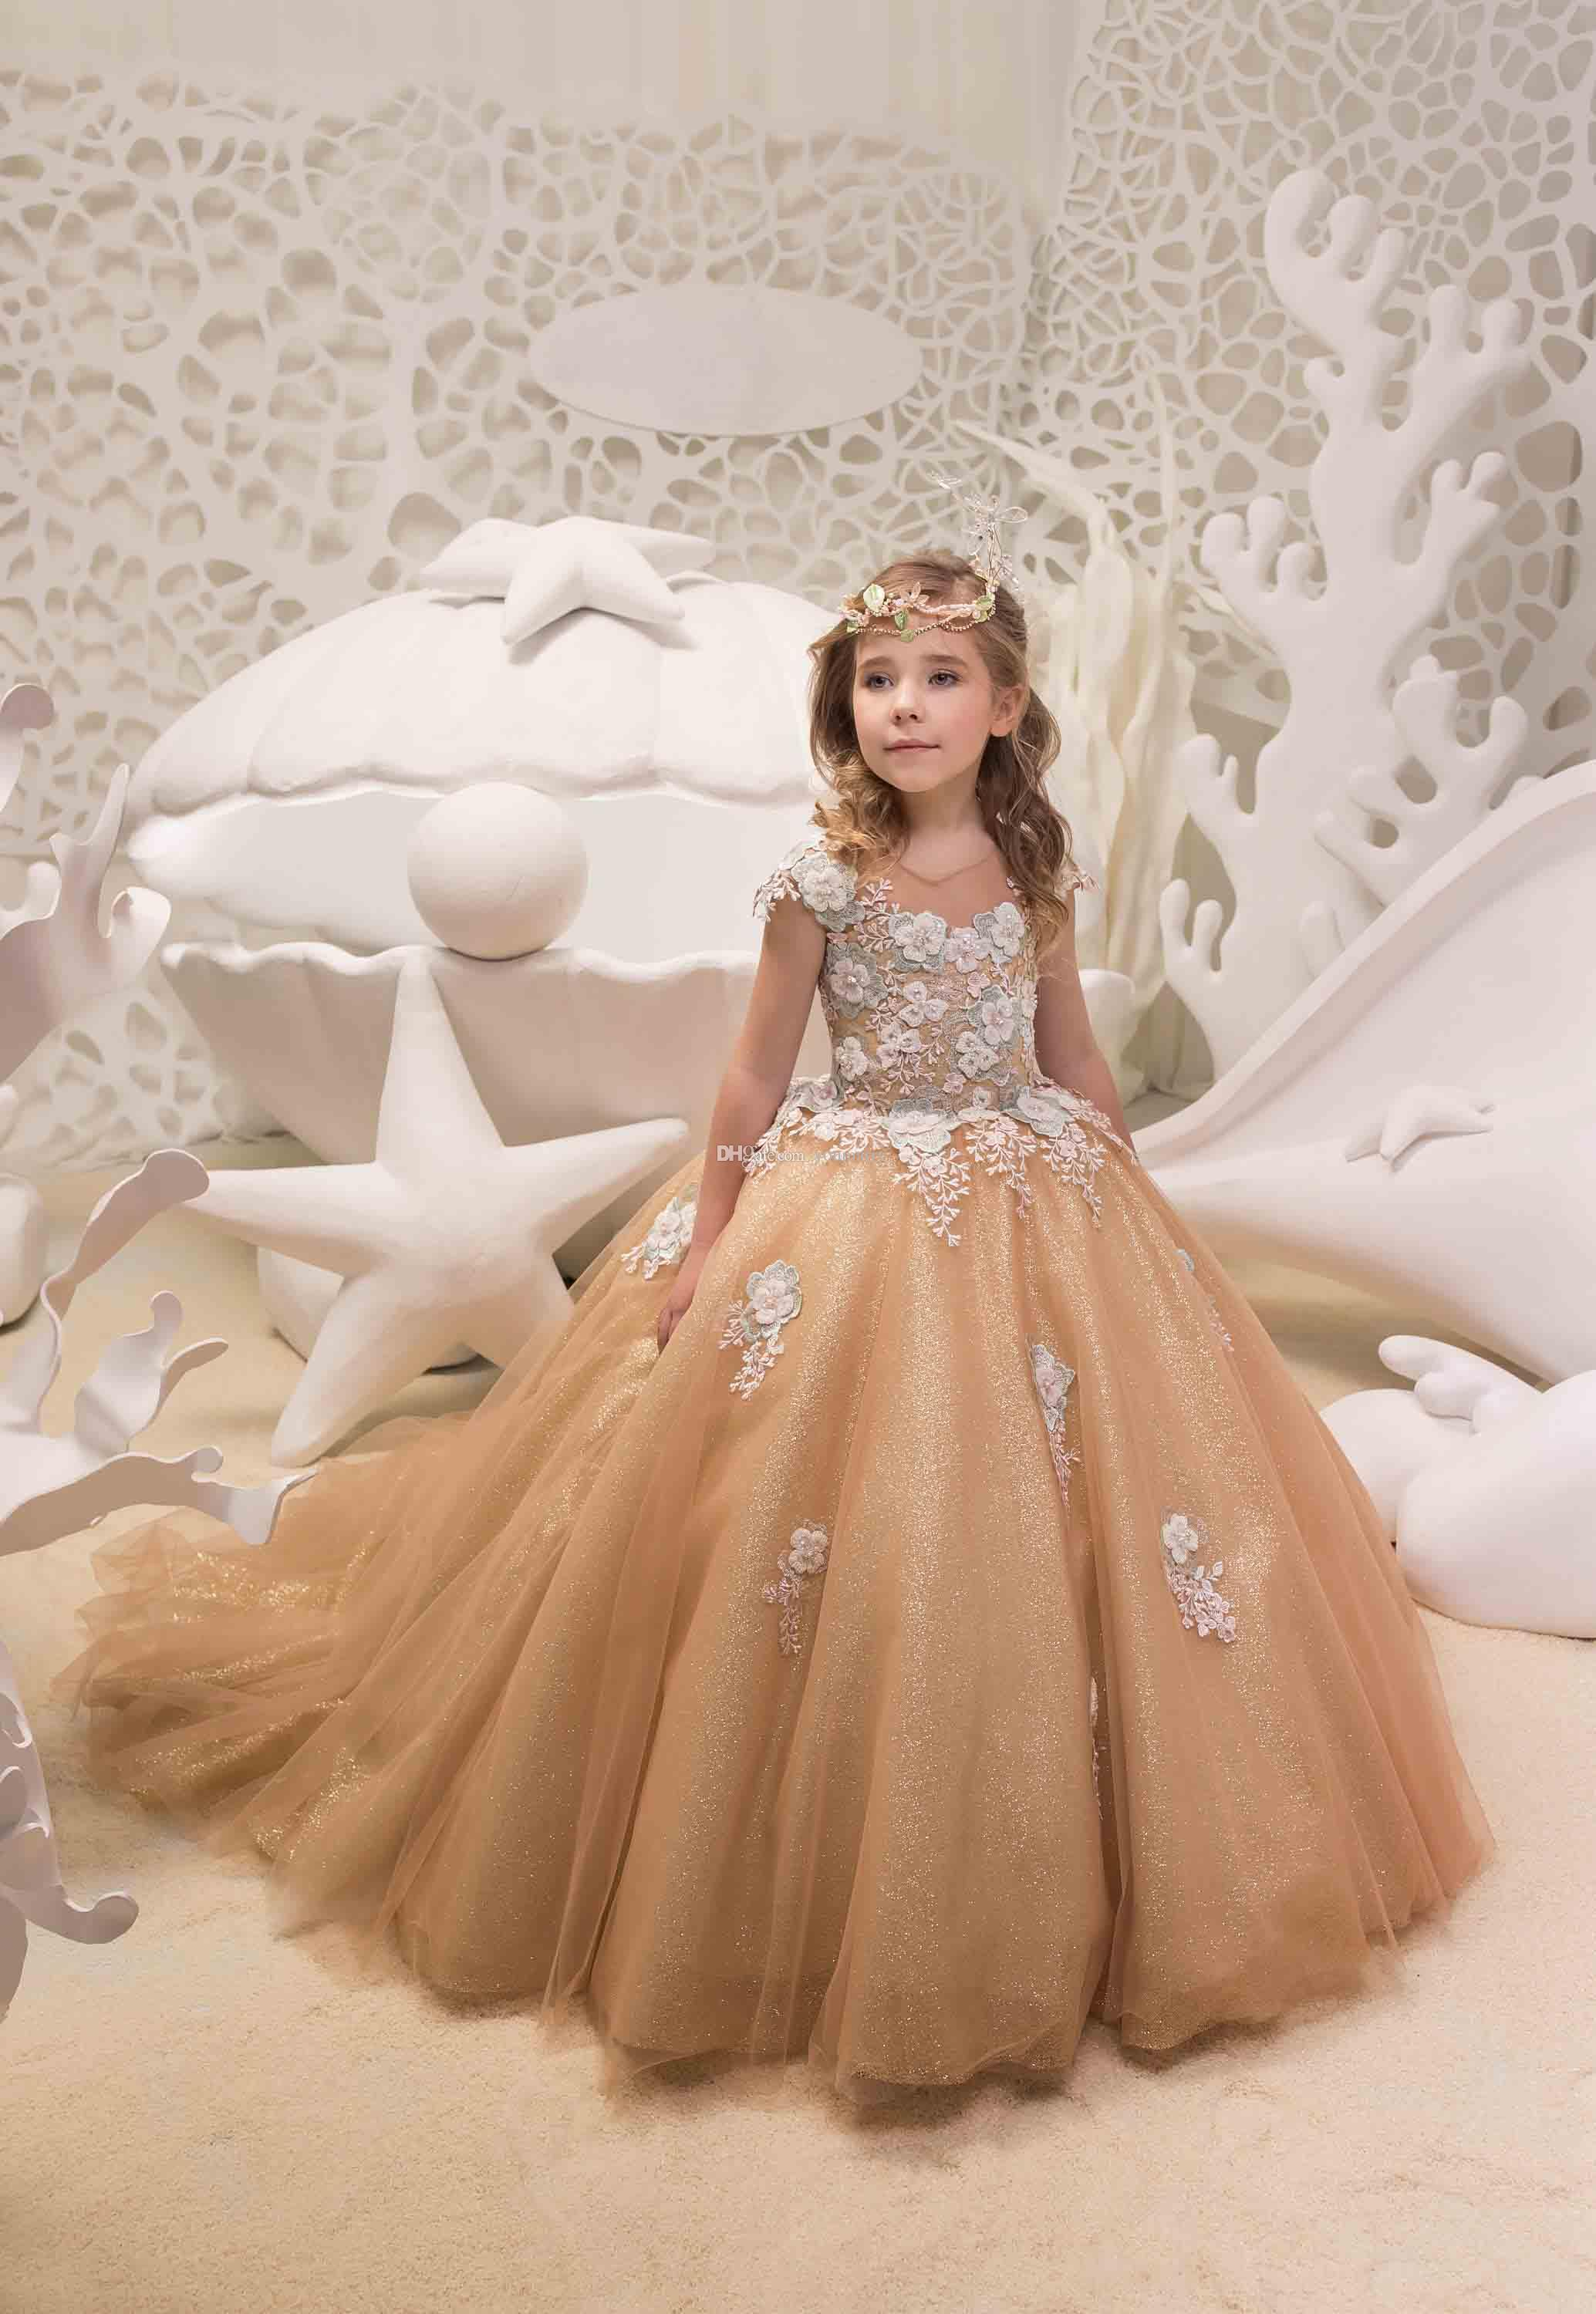 061984cd 2019 Ball Gown Gold Girls Pageant Gowns Lace Applique Sleeveless Cheap  Flower Girls Dresses Children Organza Kids Birthday Party Dress Toddler  Dresses Cheap ...